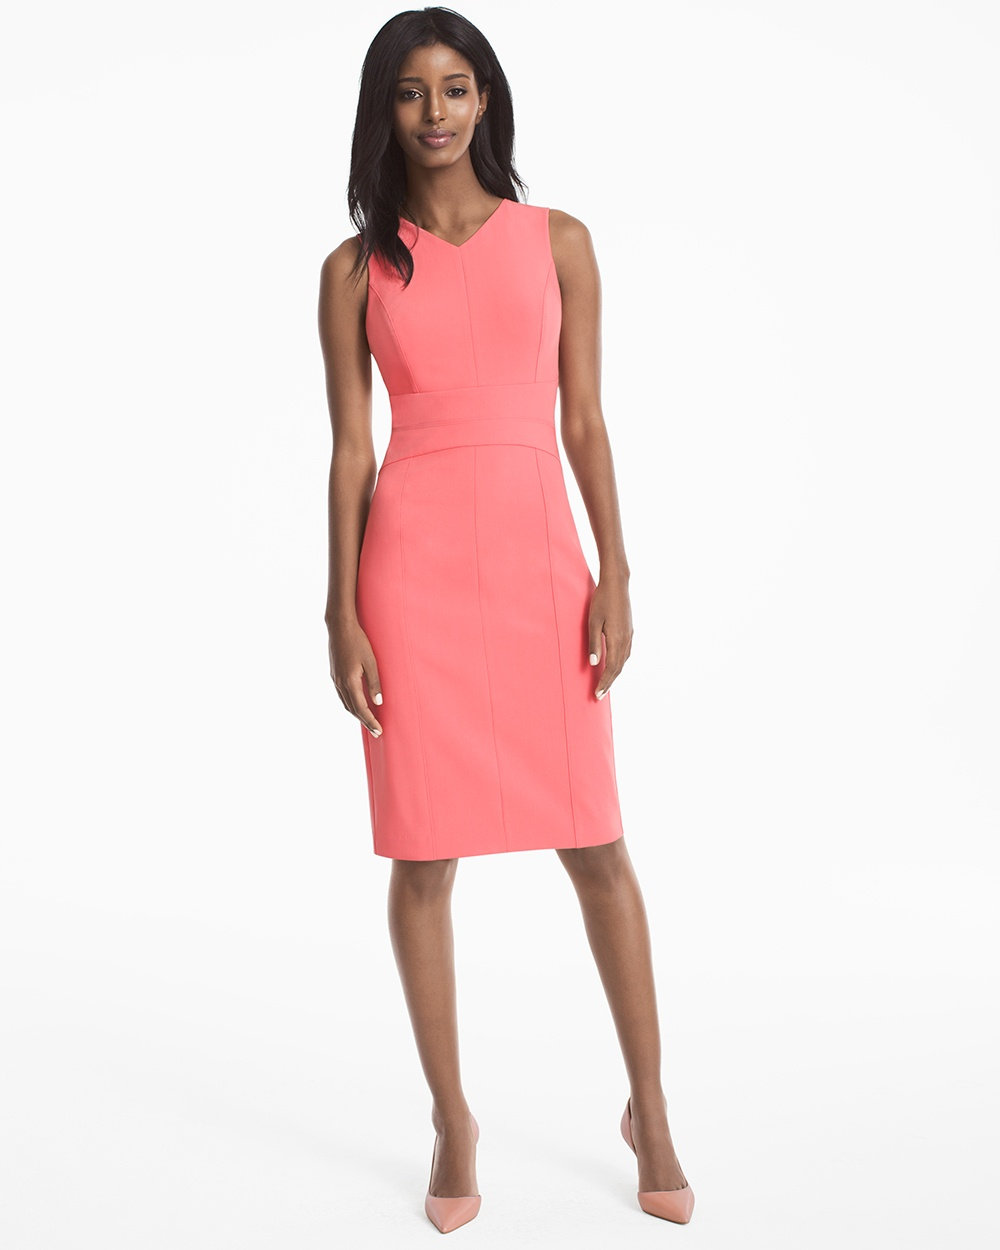 $69 - WHBM Seamed Sheath Dress